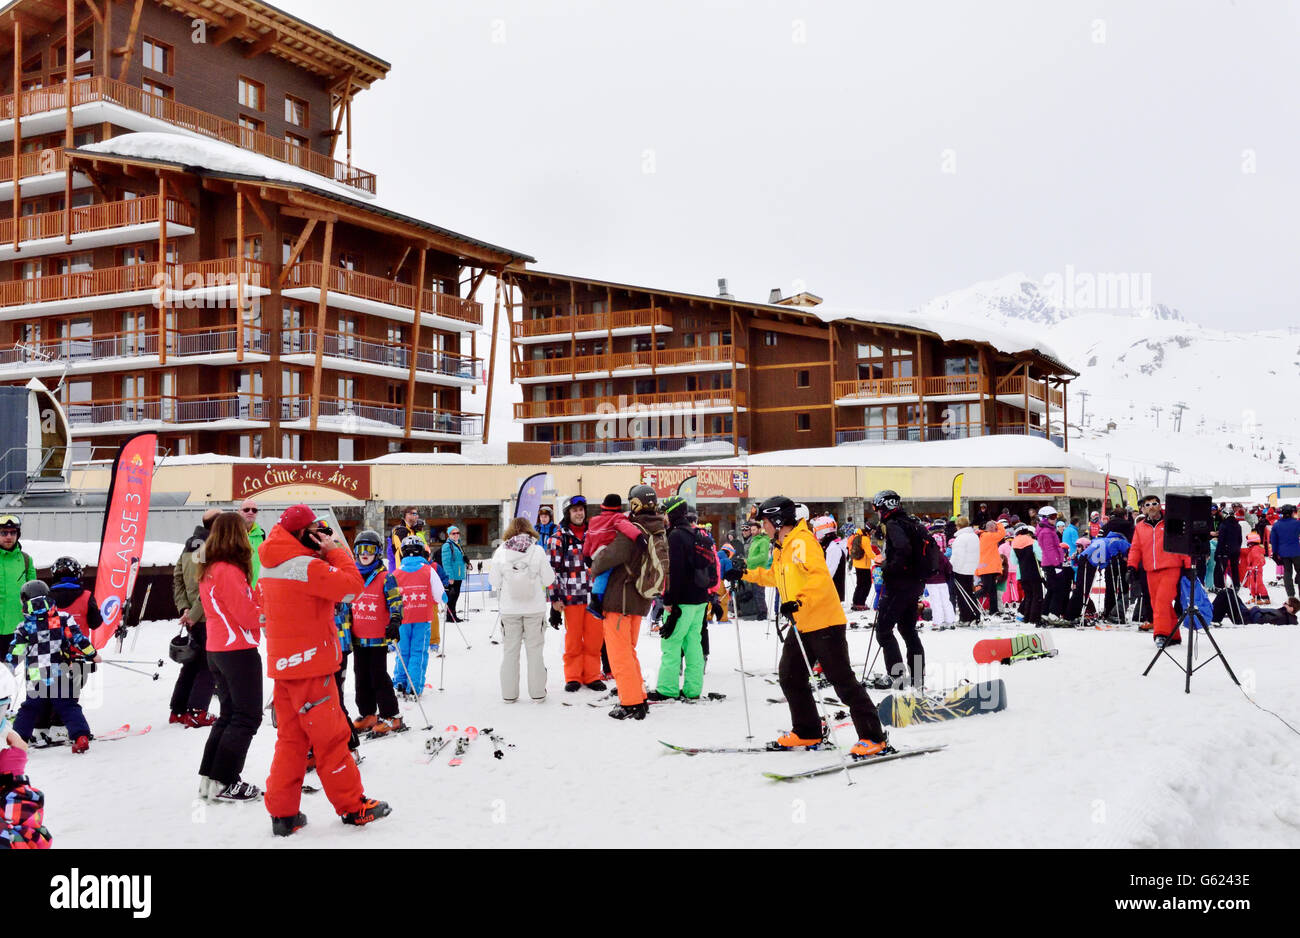 Ski resort meeting area for classes, Paradiski, Arc2000, Rhône-Alpes, France - Stock Image